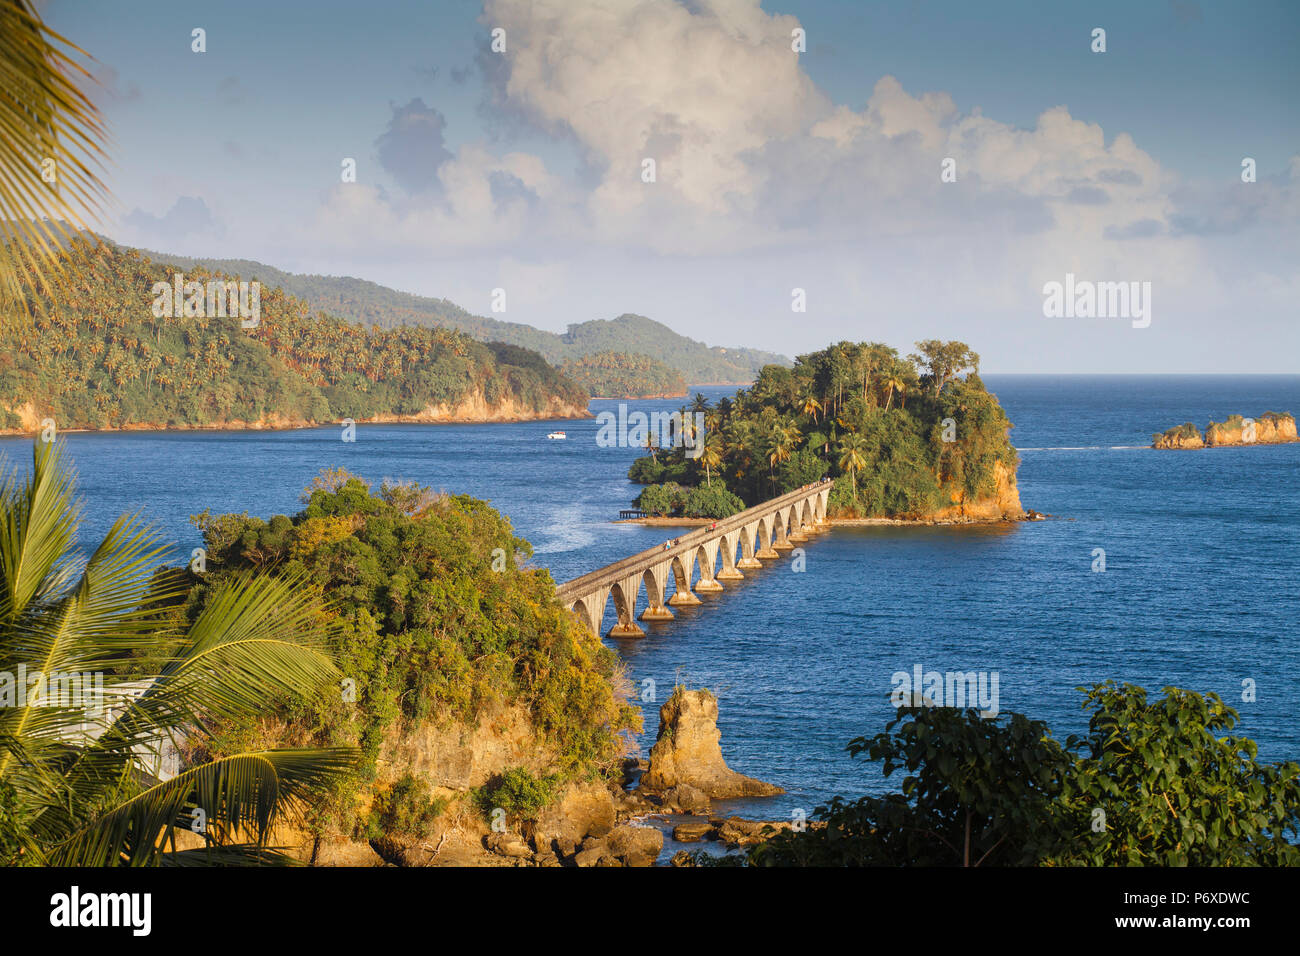 Dominican Republic, Eastern Peninsula De Samana, Semana, View of harbour and Los Puentes - Famous bridge to Nowhere - Stock Image